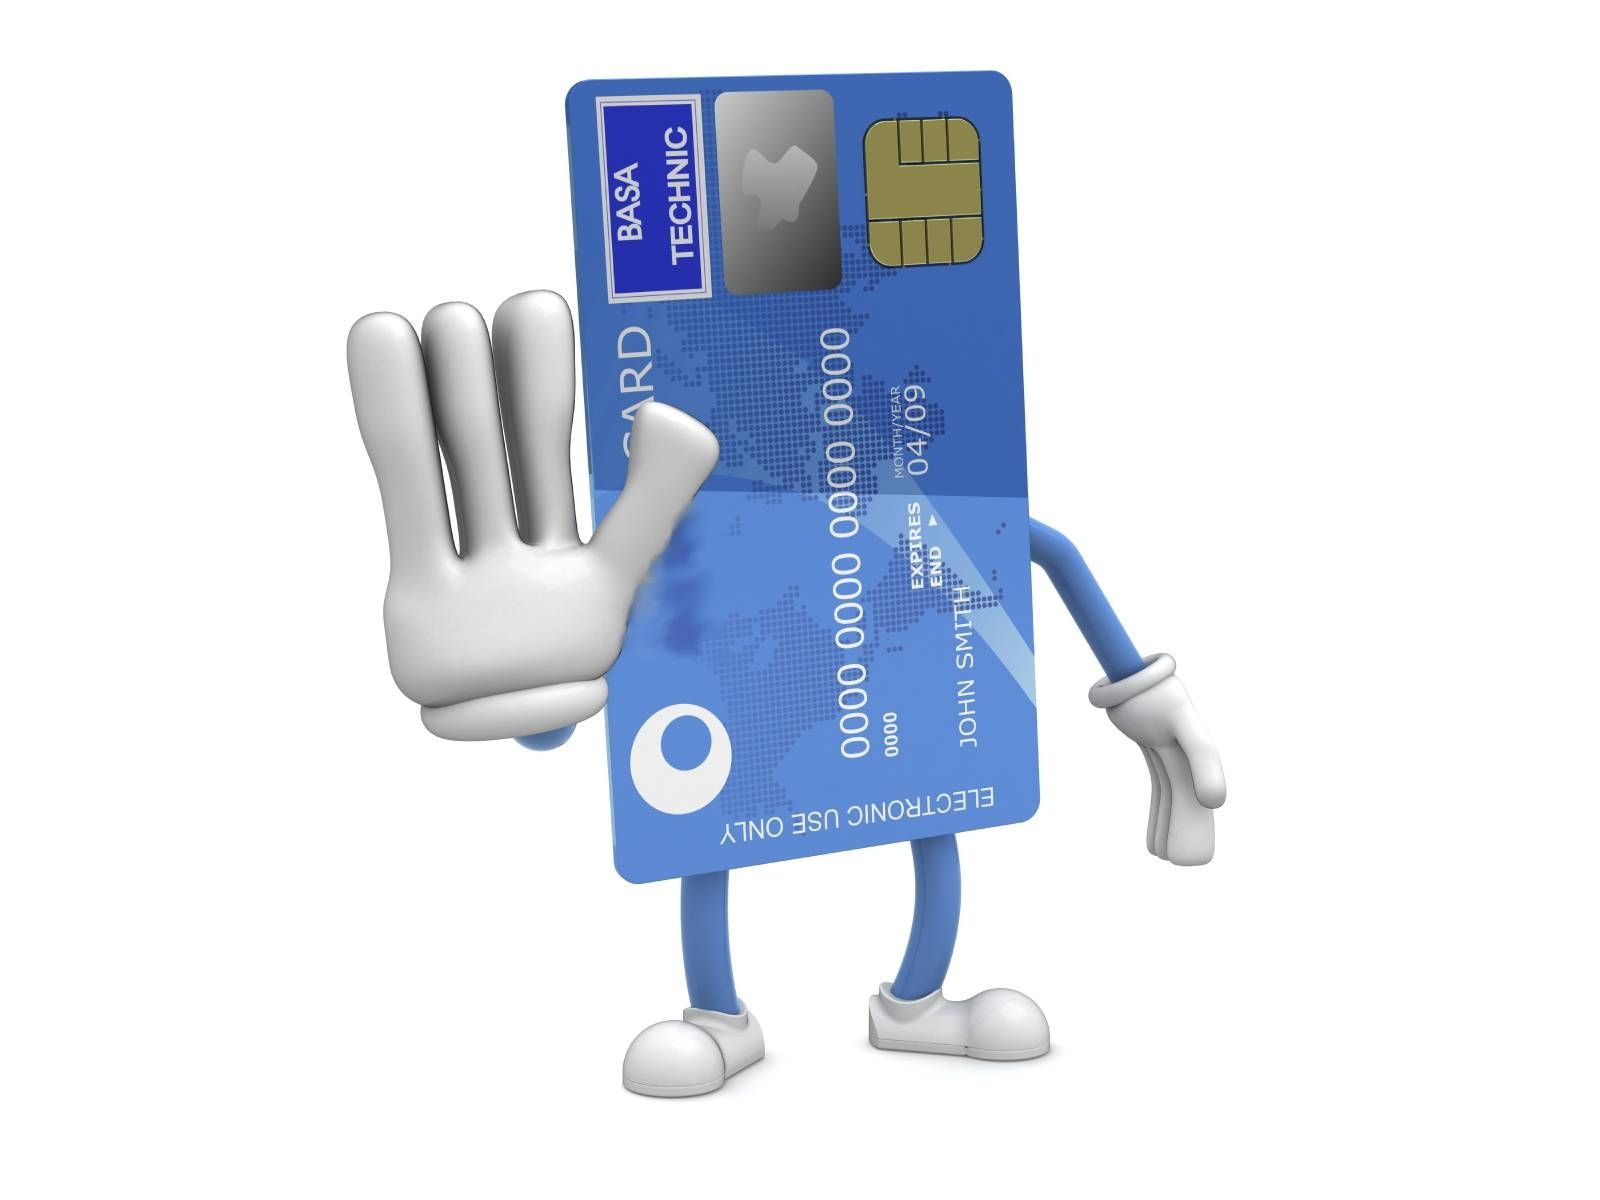 Debit order system it is important for the account holder